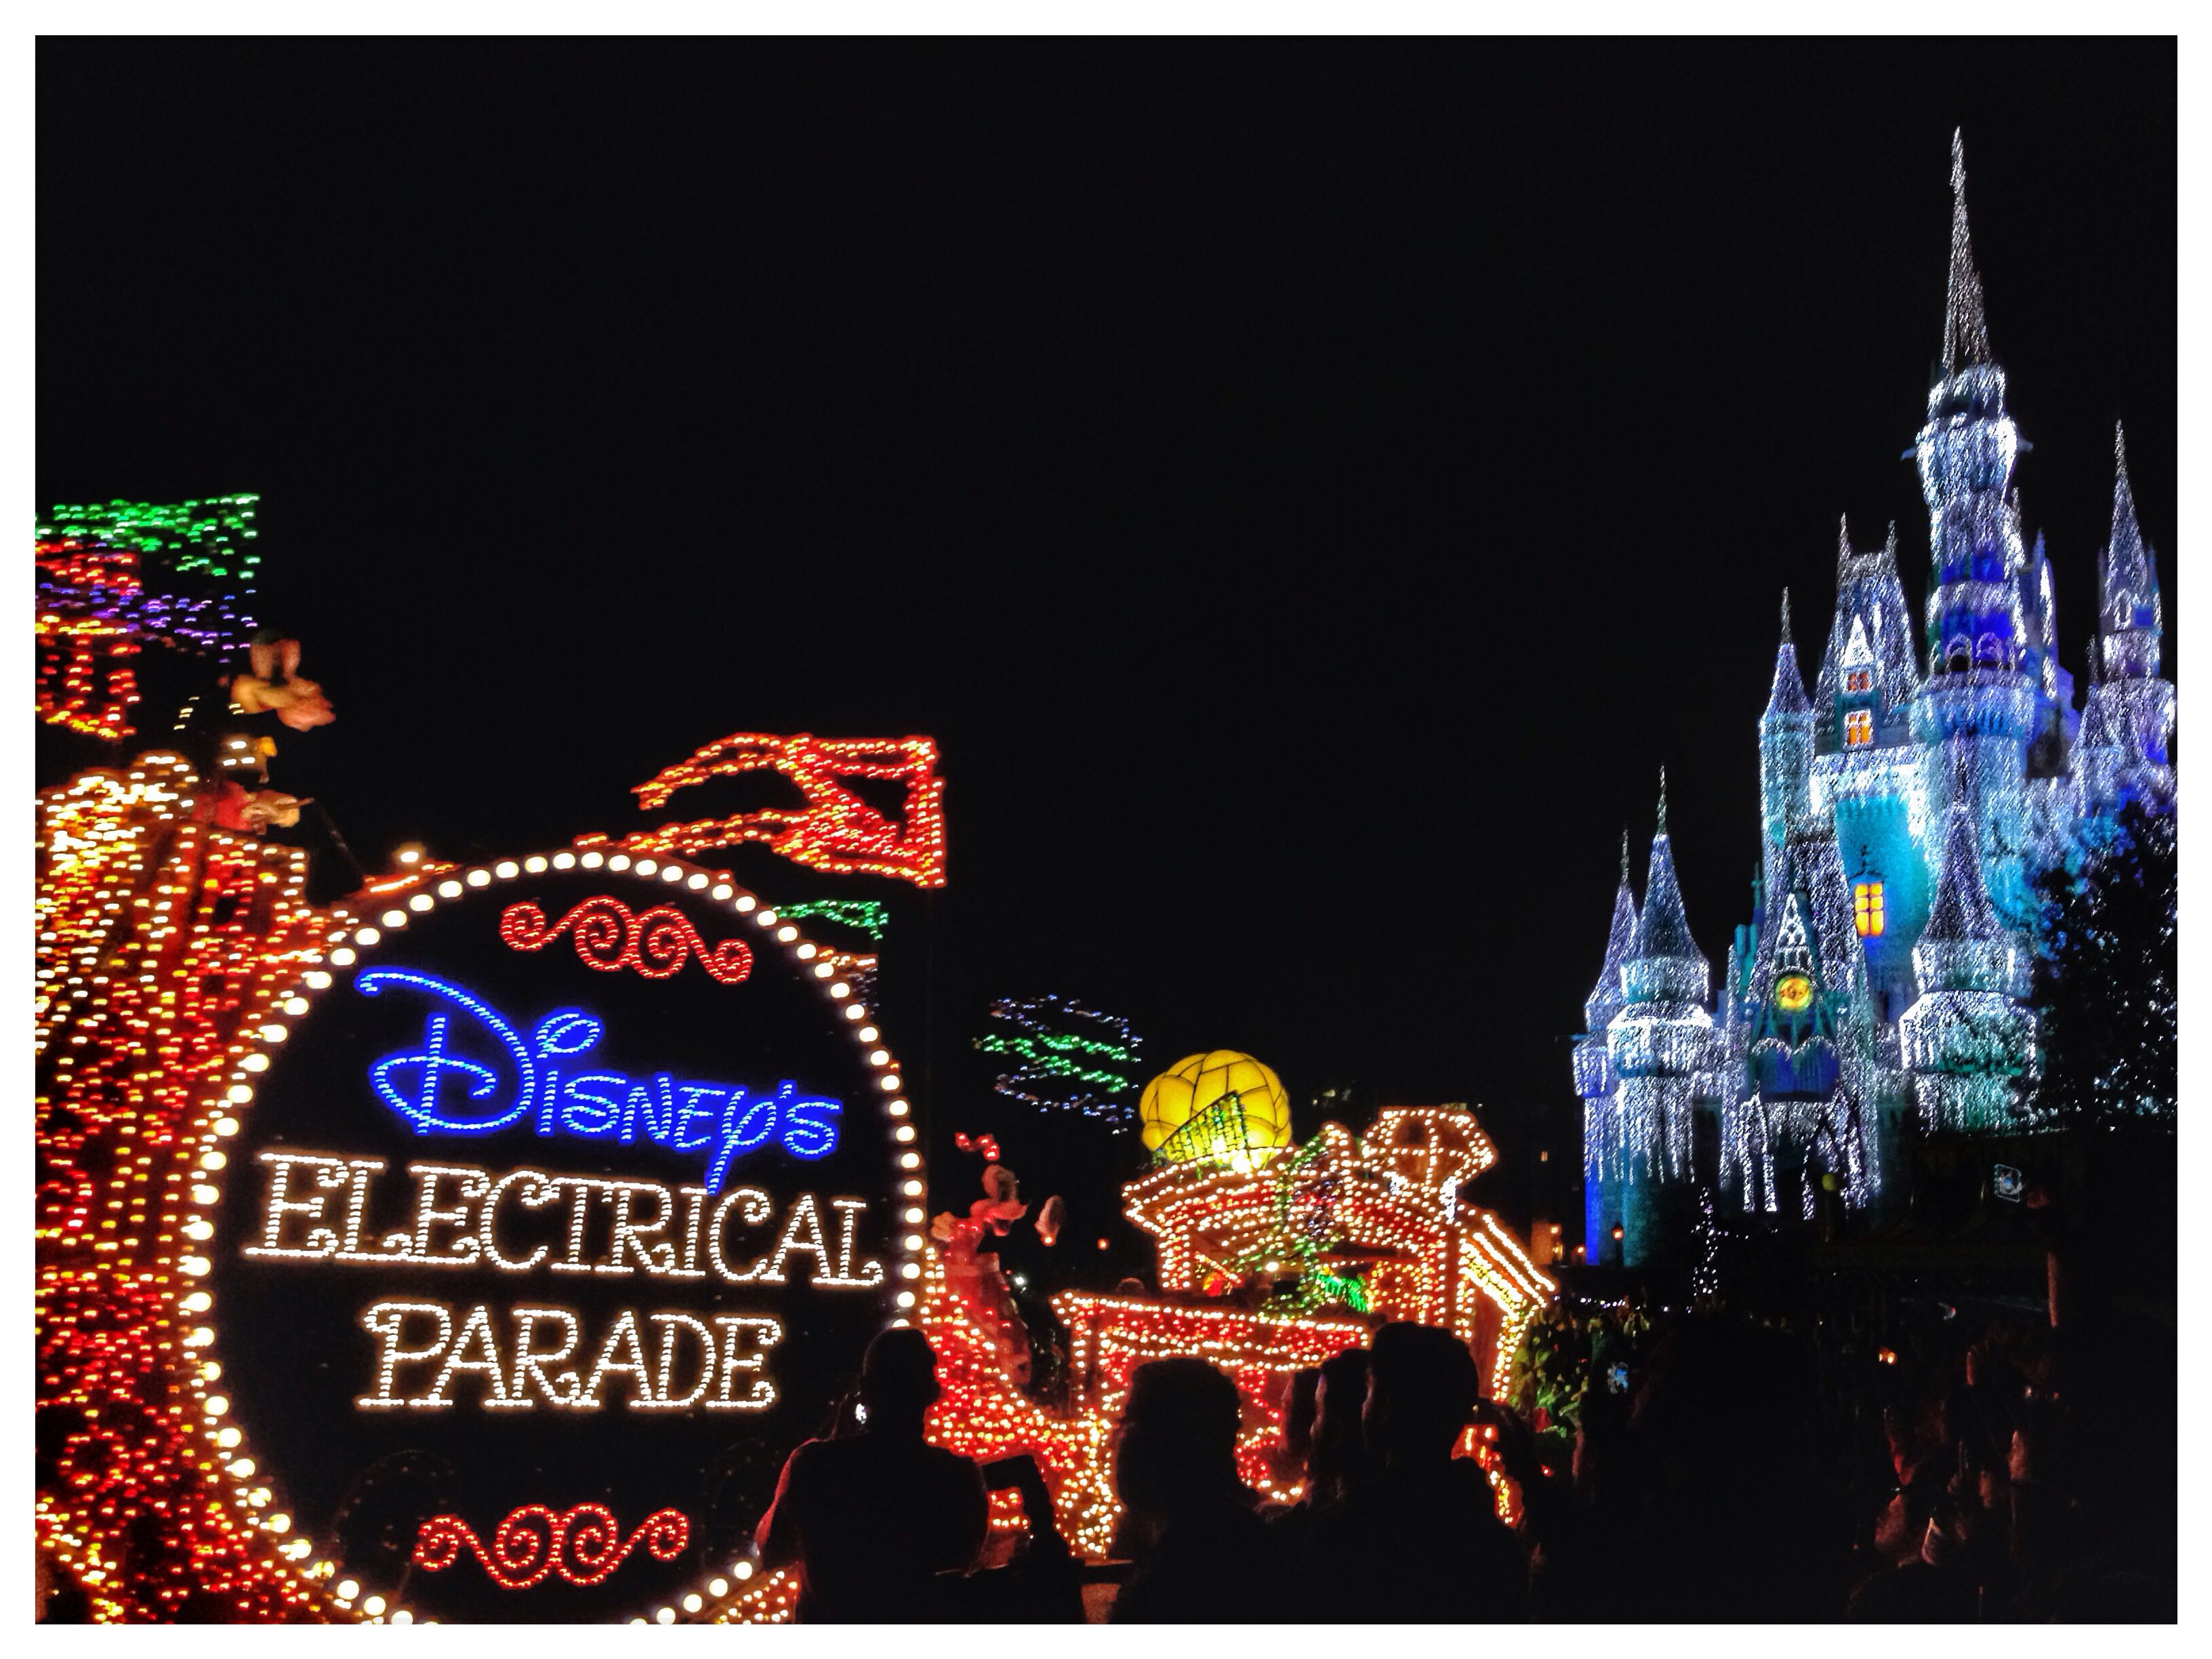 marvelous @Disney's electrical parade w/in #WinterDream